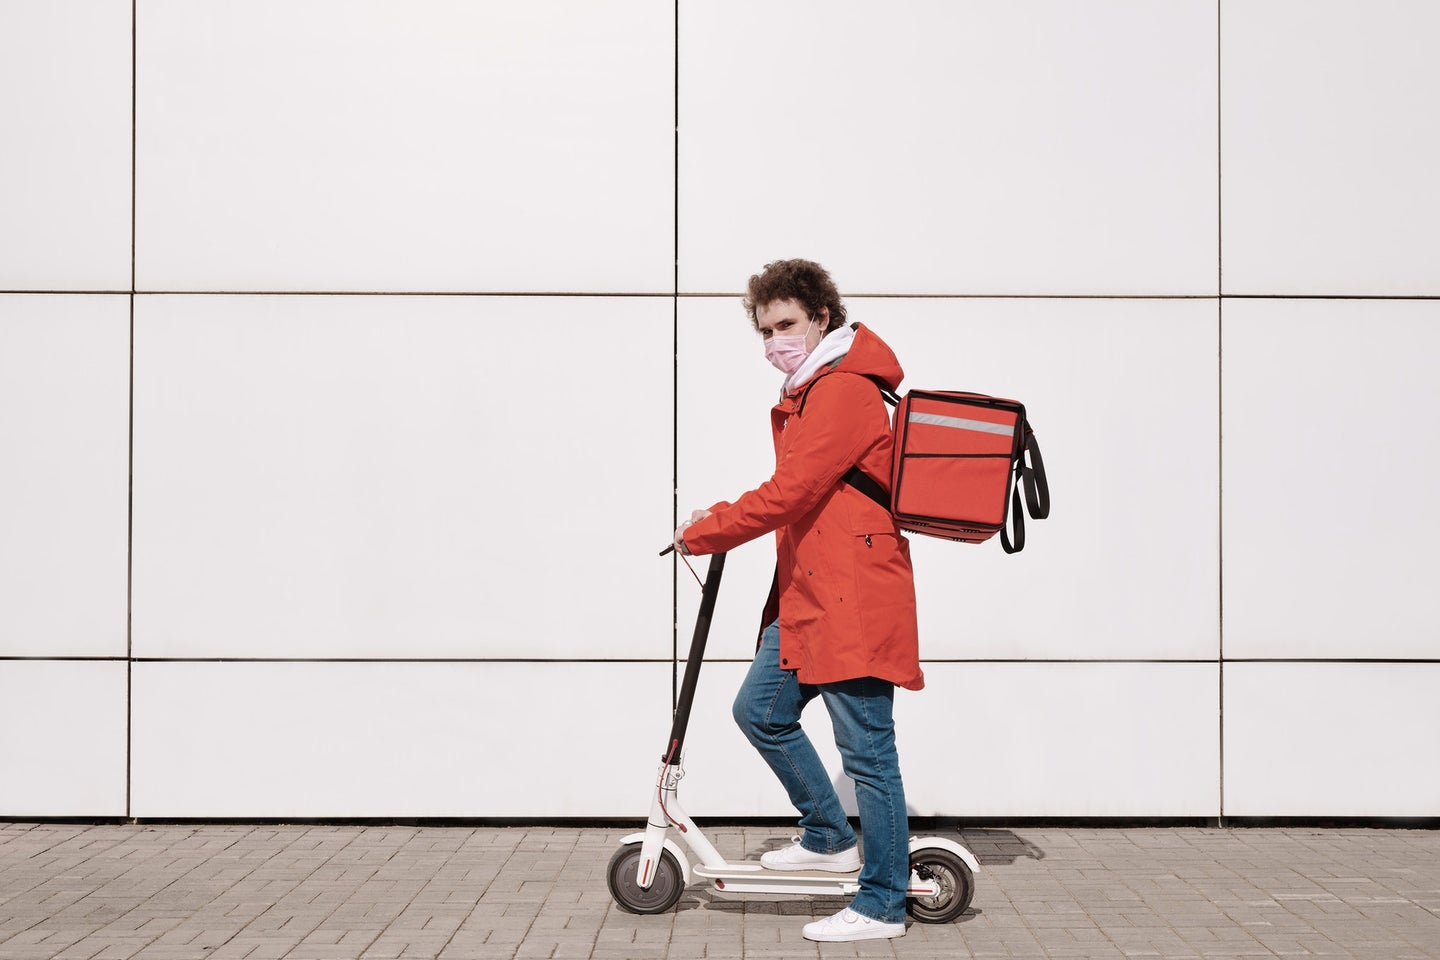 A person wearing a mask rides a scooter